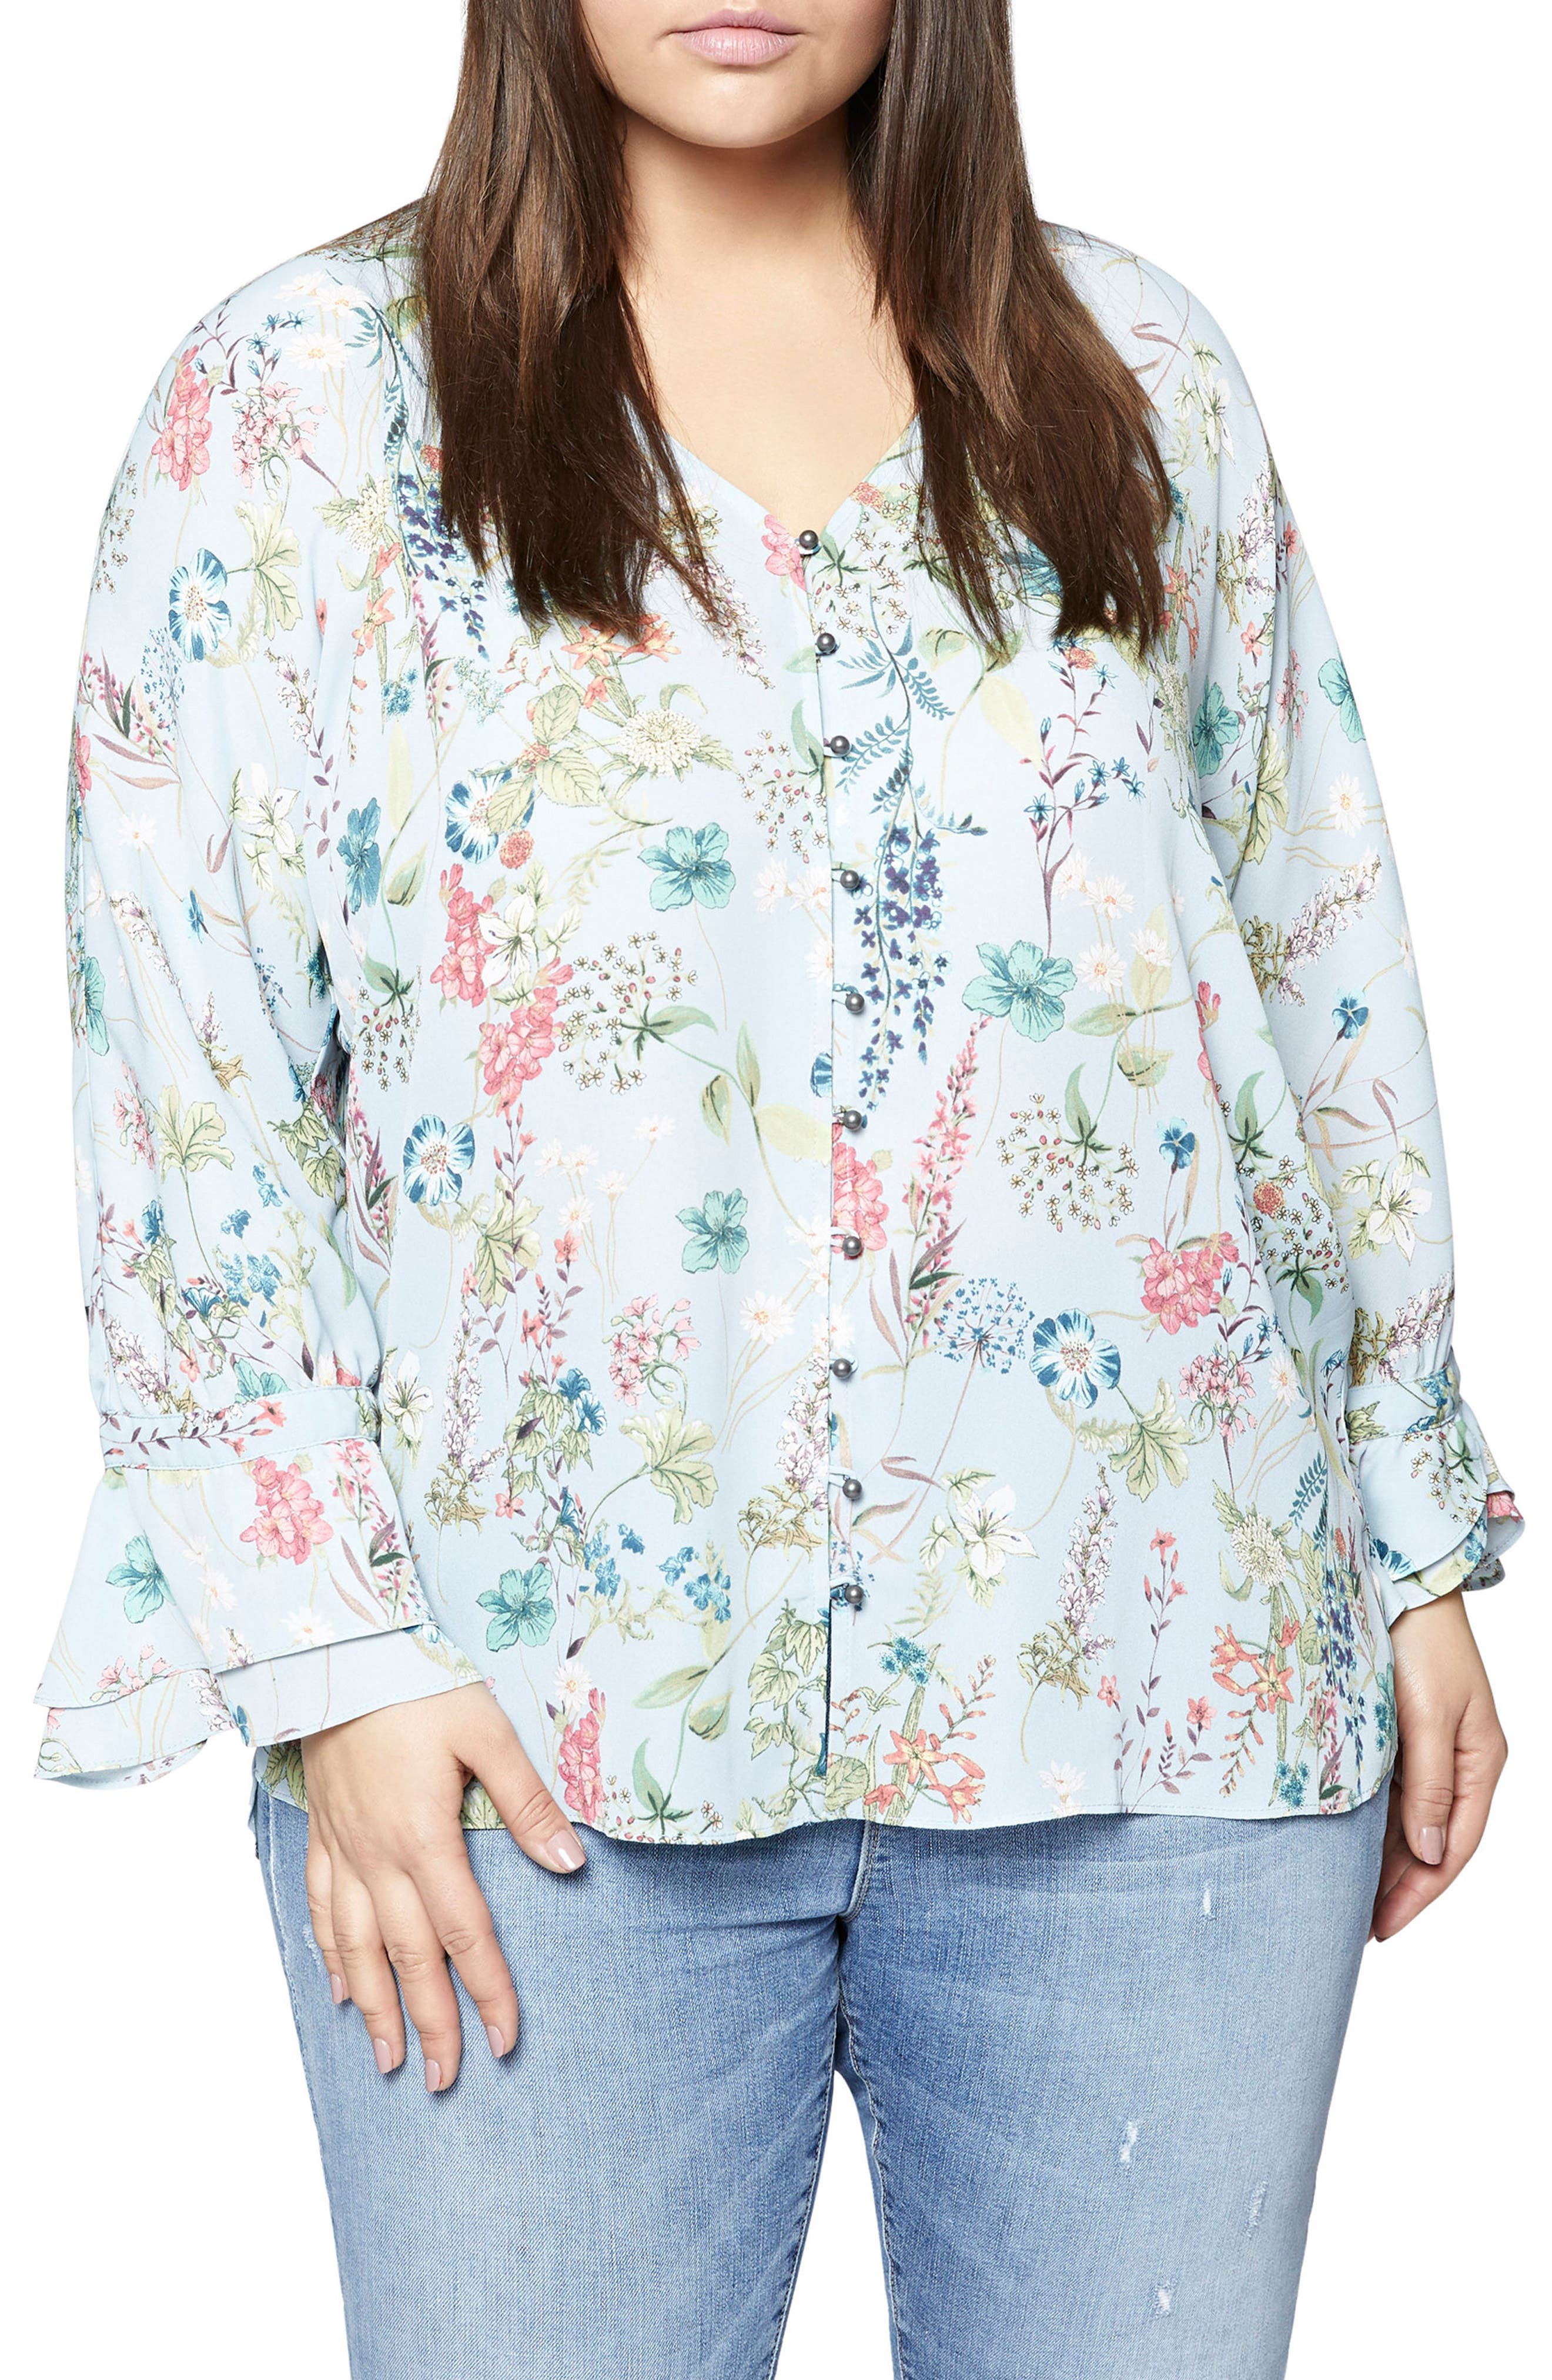 Posey Floral Blouse,                             Main thumbnail 1, color,                             Bluebell